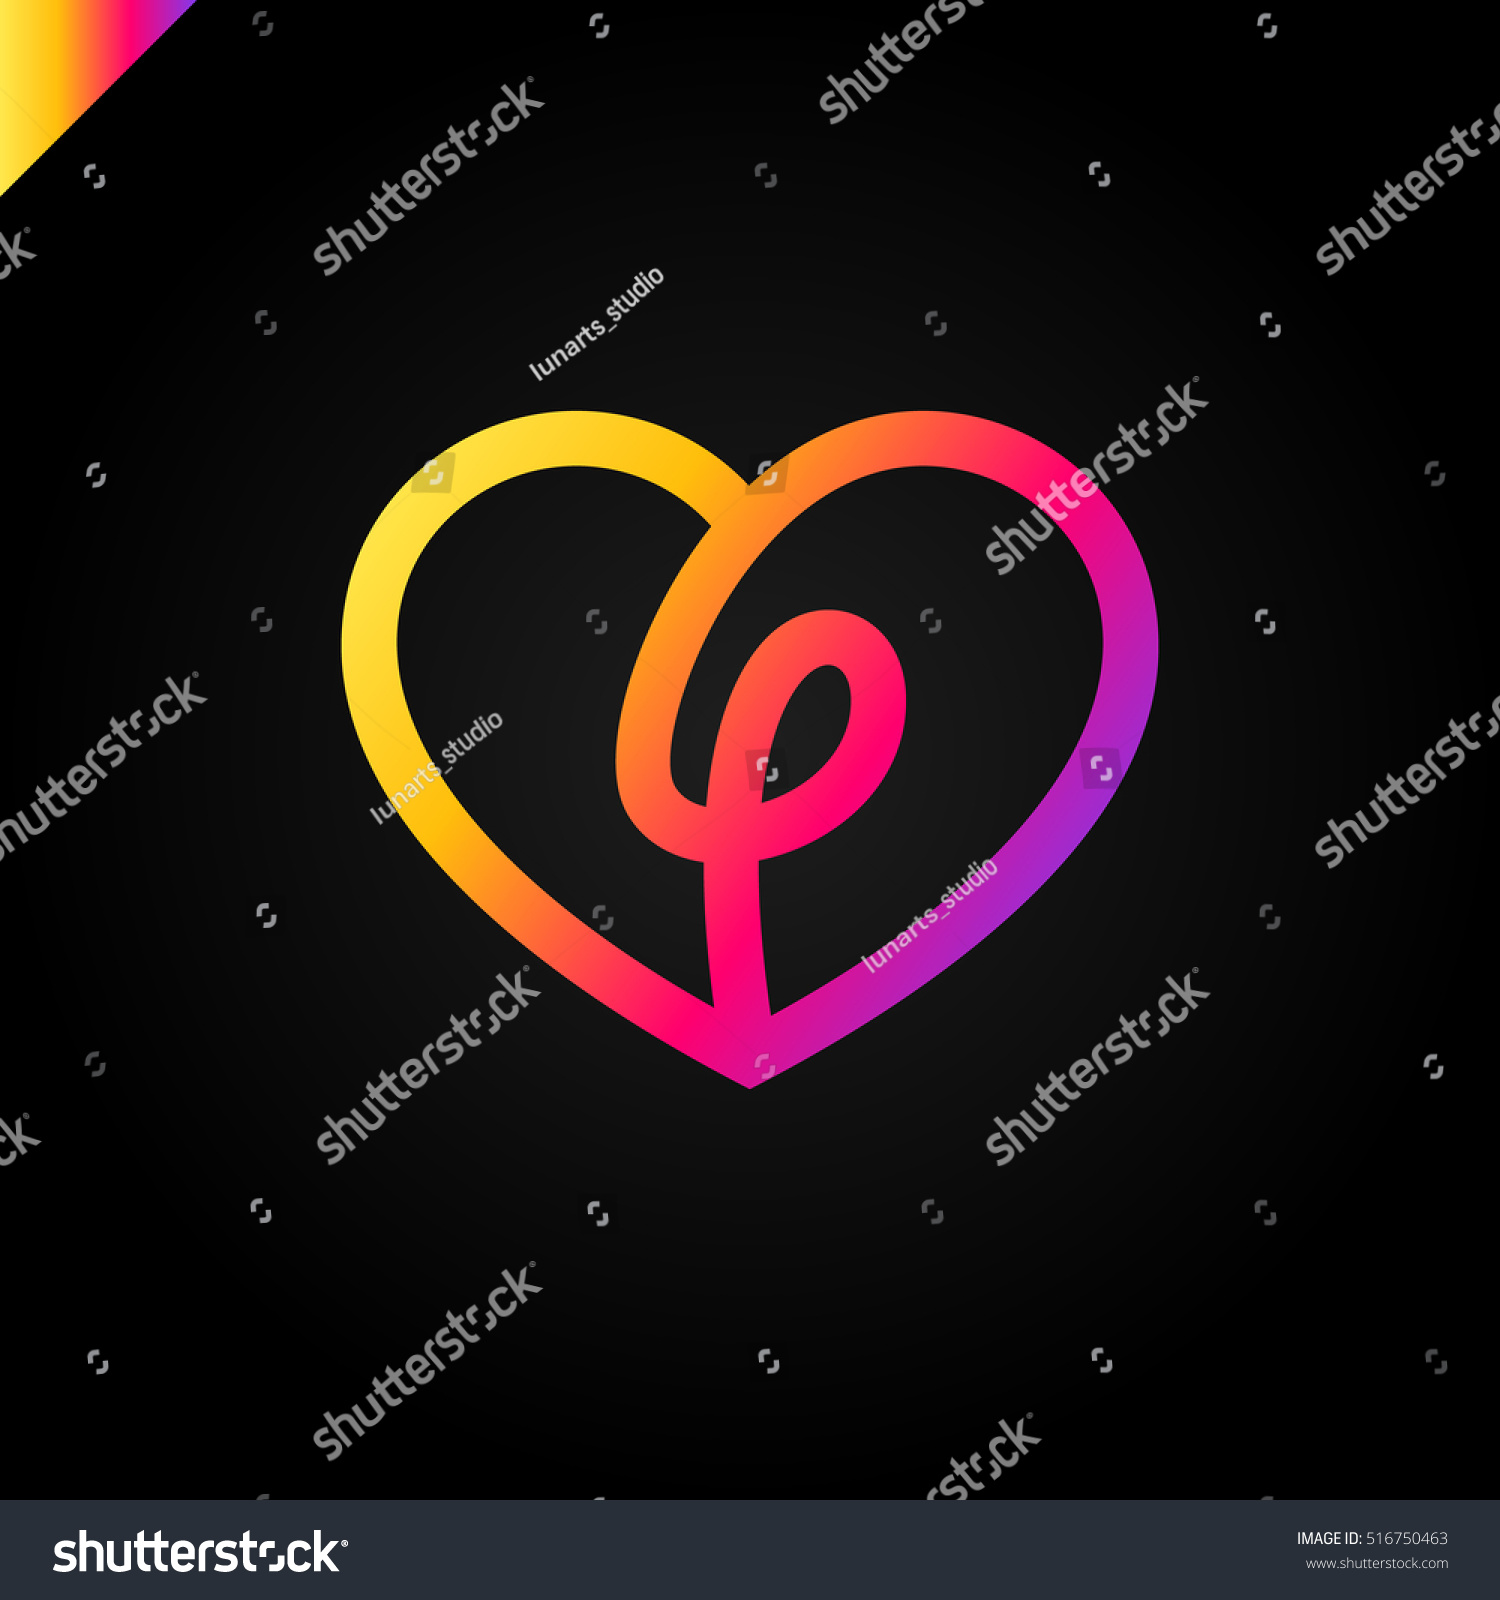 Heart symbol logo icon design template stock vector 516750463 heart symbol logo icon design template with letter l in middle may be used in buycottarizona